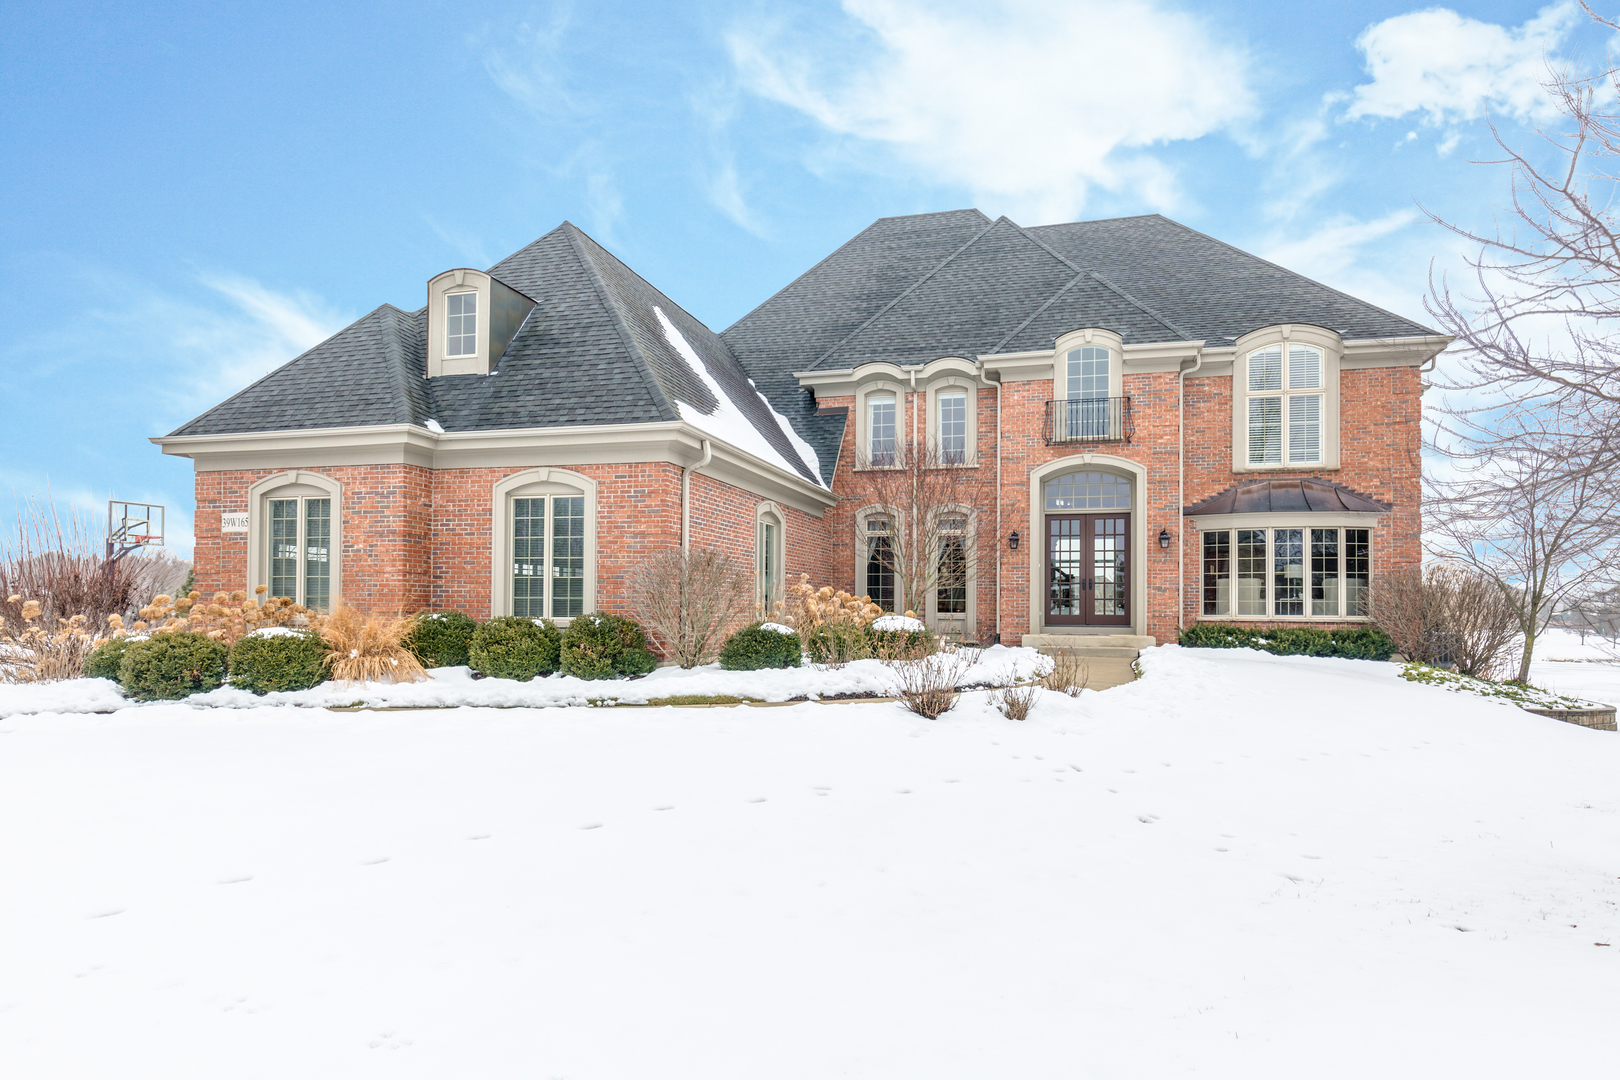 Luxury Homes For Sale In St Charles Illinois St